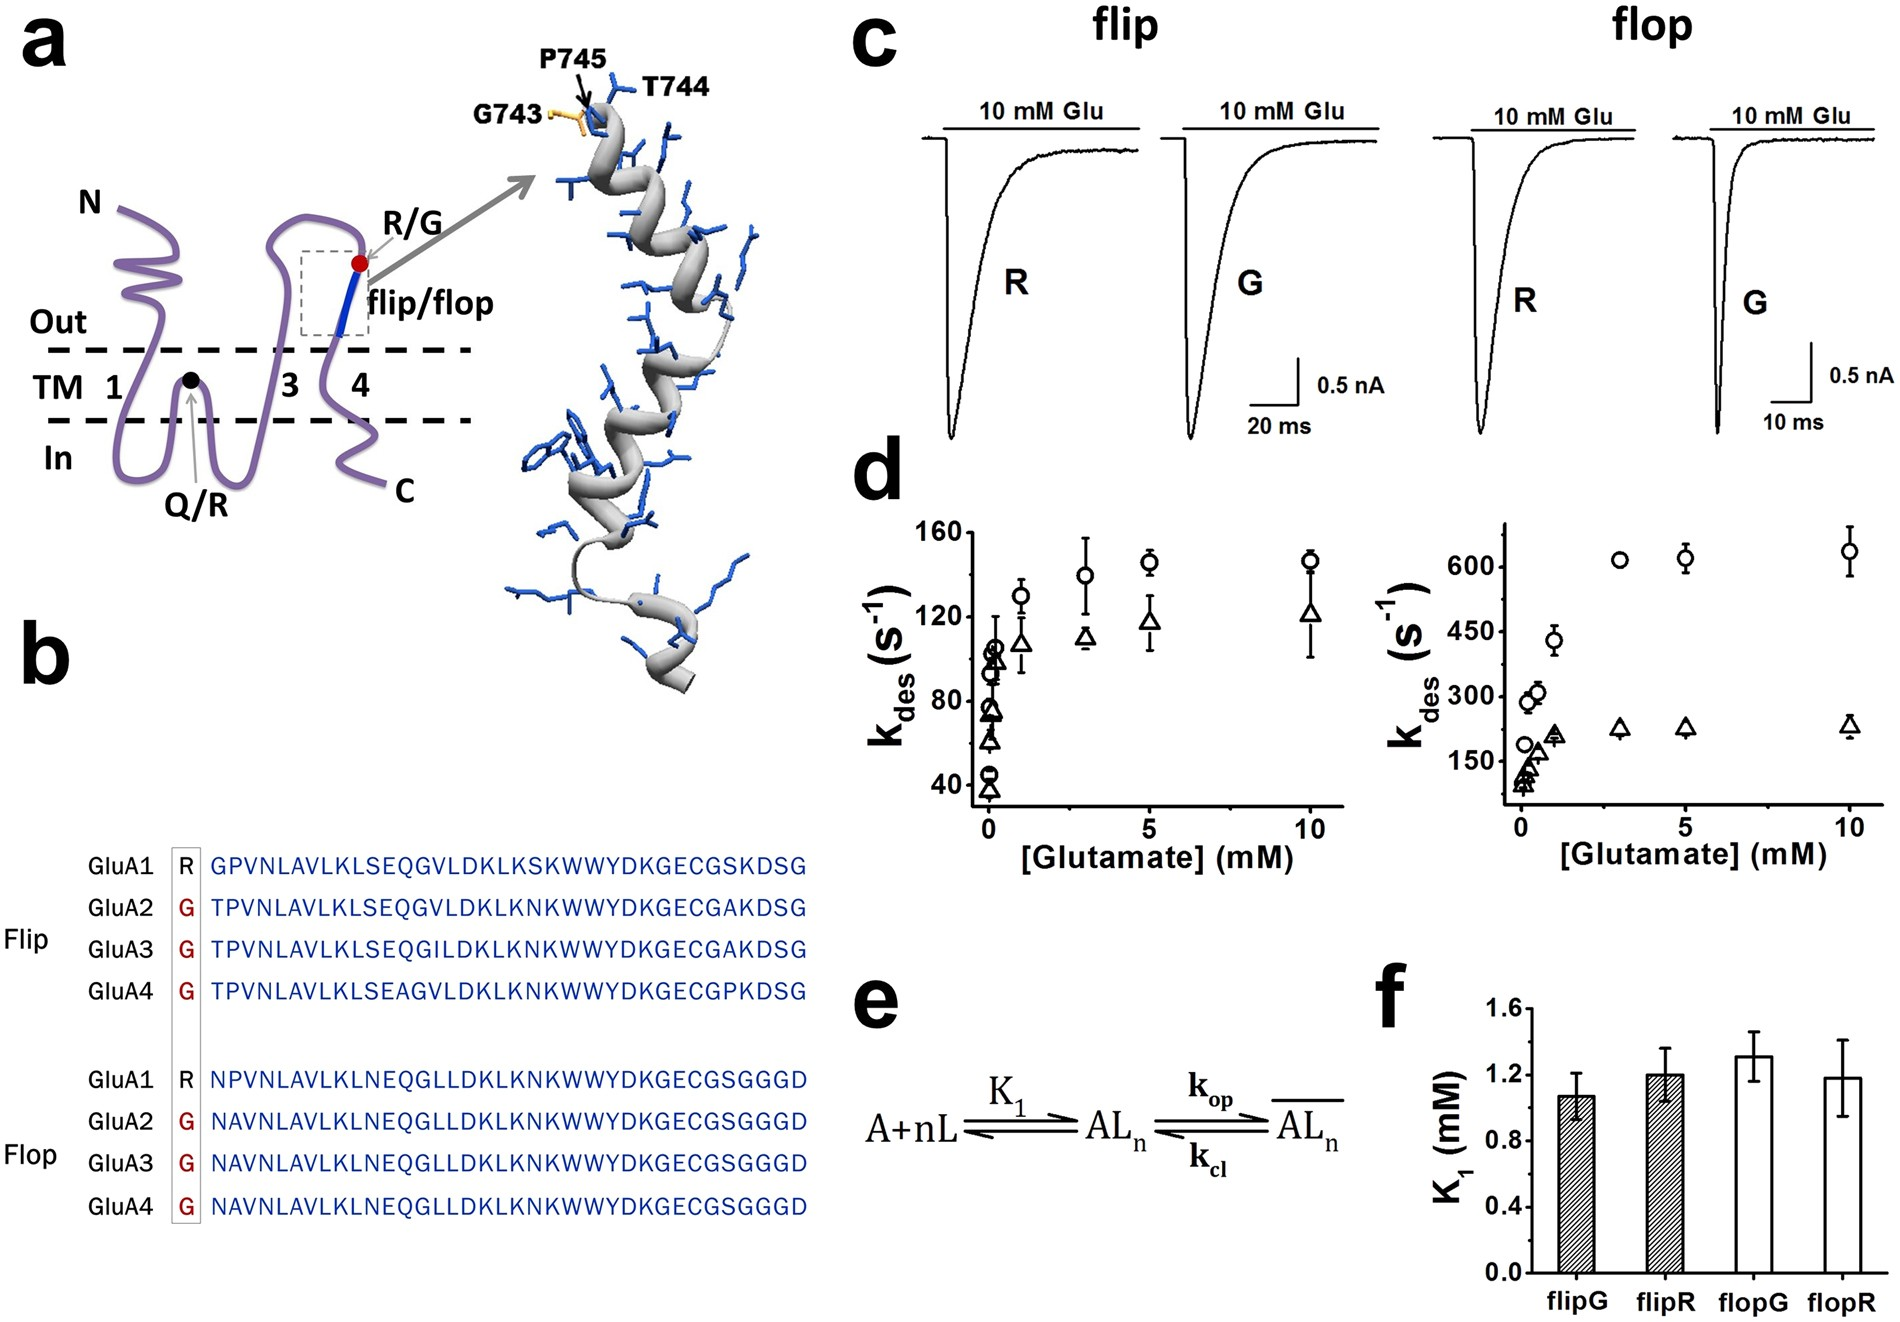 e923fa375 R G editing in GluA2R flop modulates the functional difference between  GluA1 flip and flop variants in GluA1 2R heteromeric channels